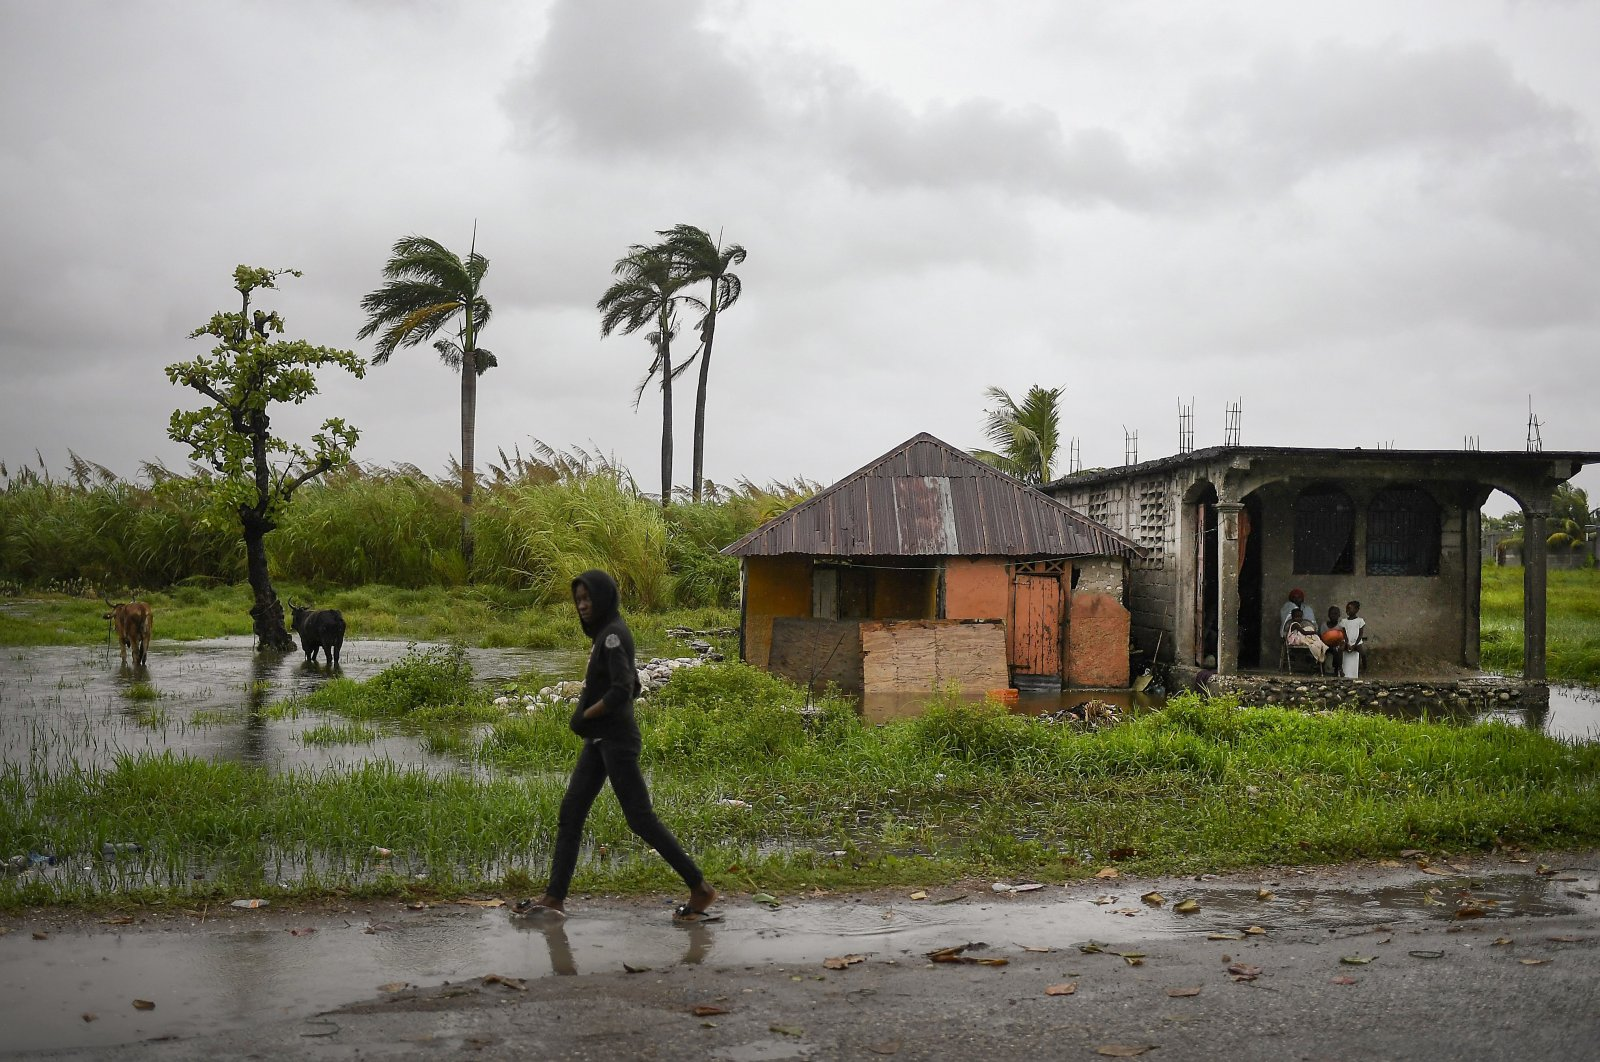 A man walks along a road in a slightly flooded area the morning after Tropical Storm Grace swept over the area in Trou Mahot, Haiti, Aug. 17, 2021. (AP Photo)